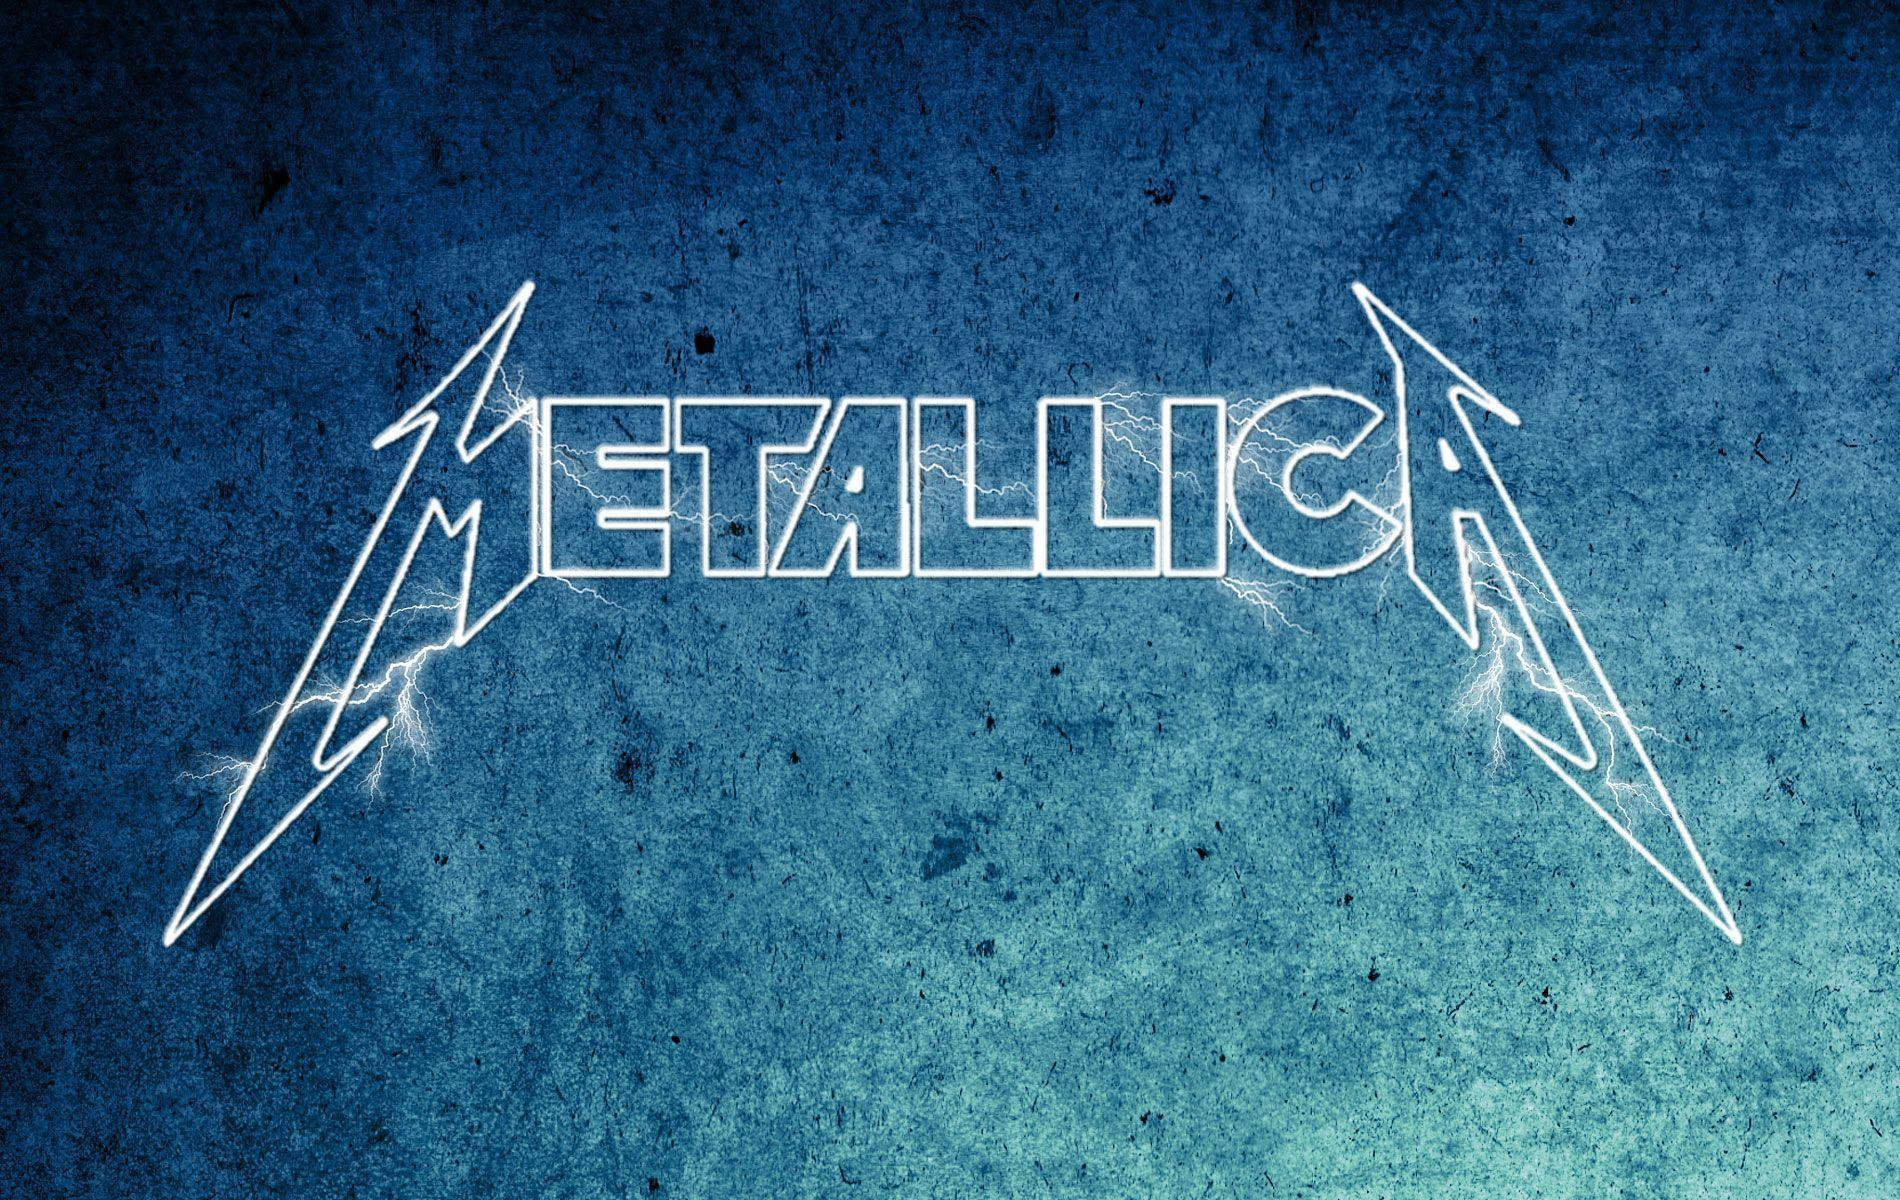 metallica lighting logo wallpaper - photo #40